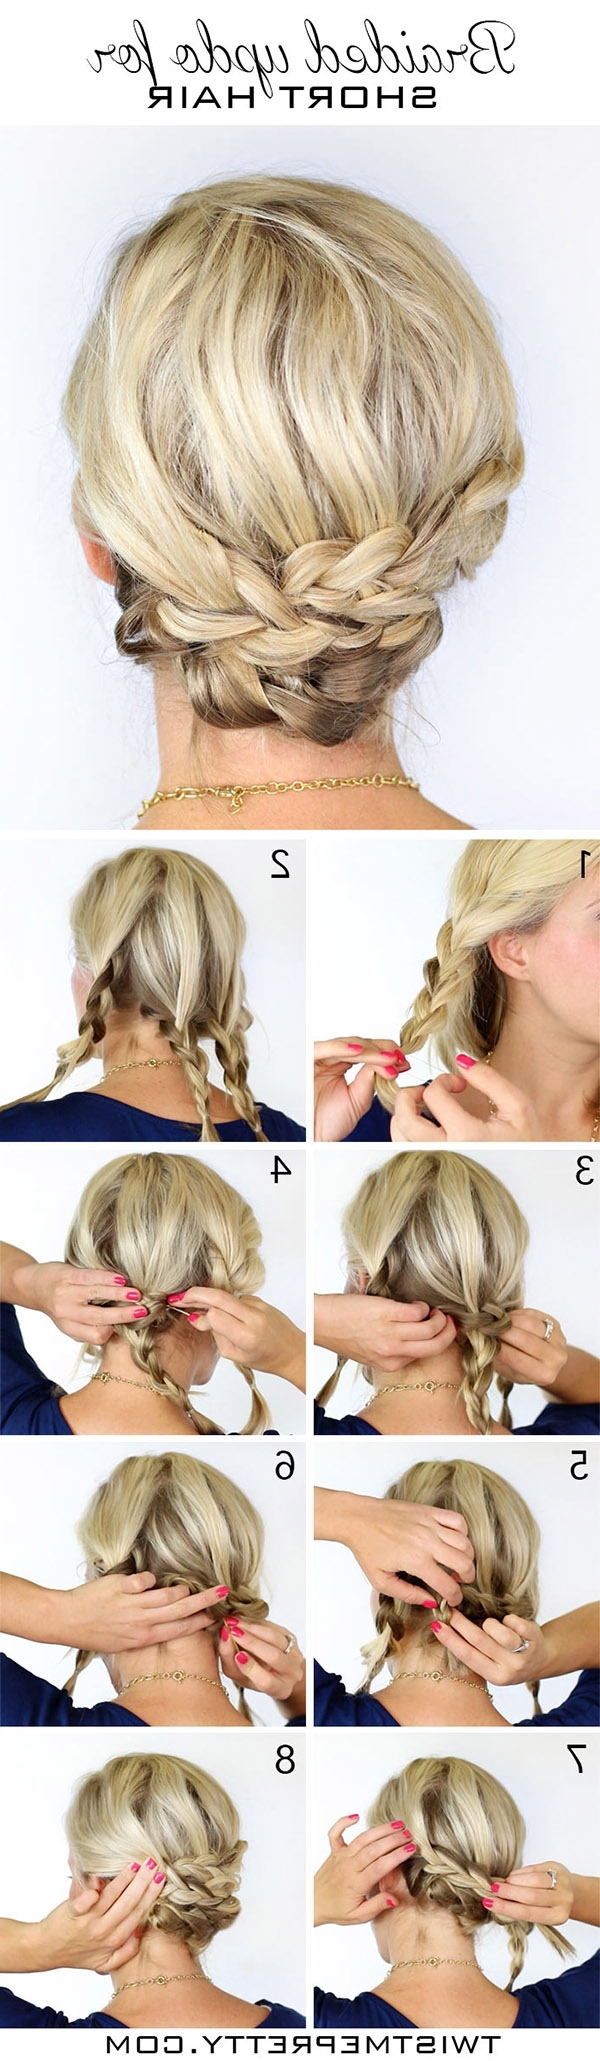 20 Diy Wedding Hairstyles With Tutorials To Try On Your Own With Fashionable Easy Bridal Hairstyles For Short Hair (View 1 of 15)